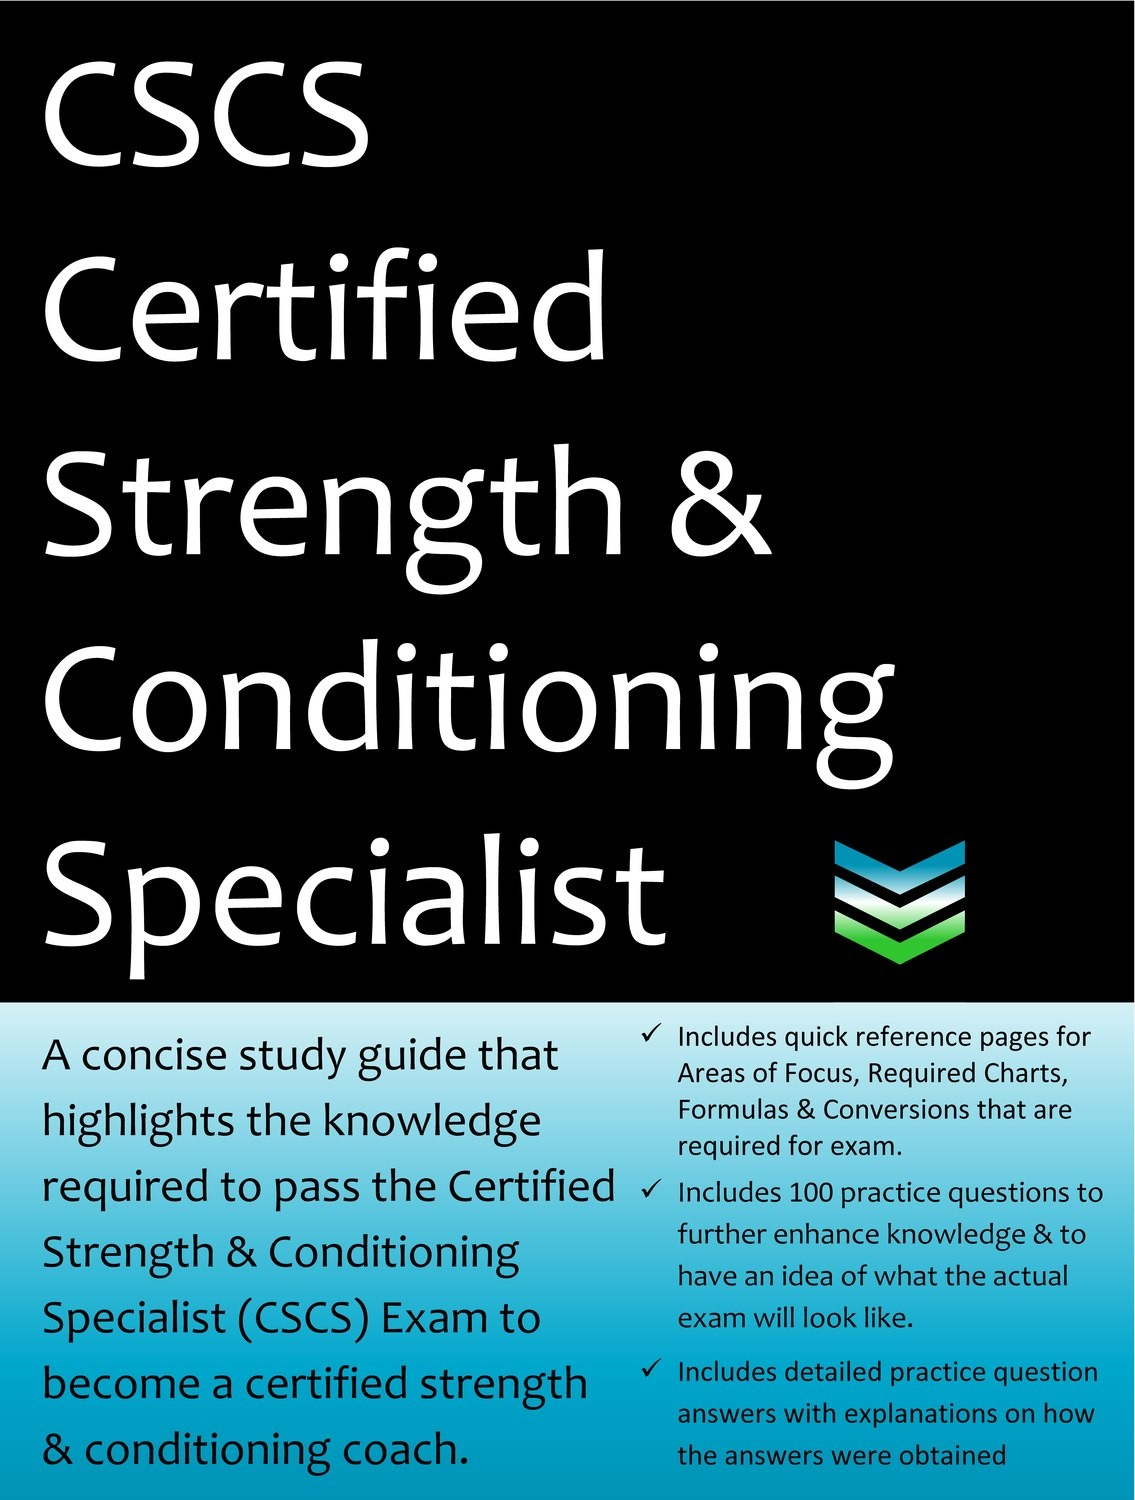 CSCS Certified Strength & Conditioning Specialist